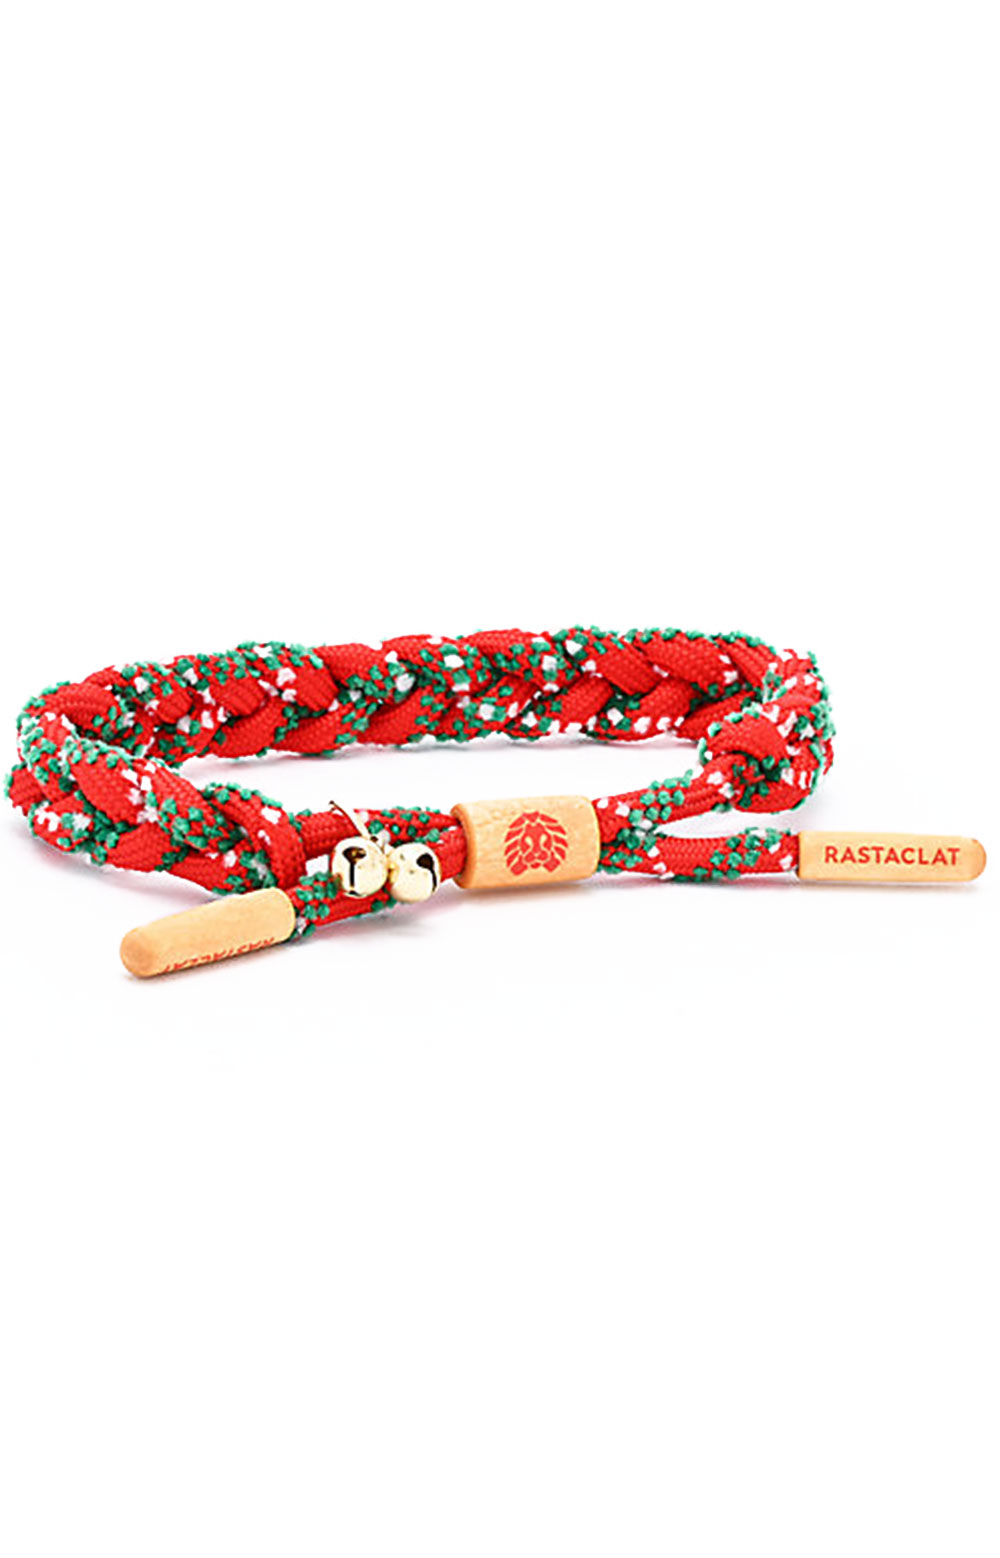 Tacky Sweater Knotaclat Bracelet